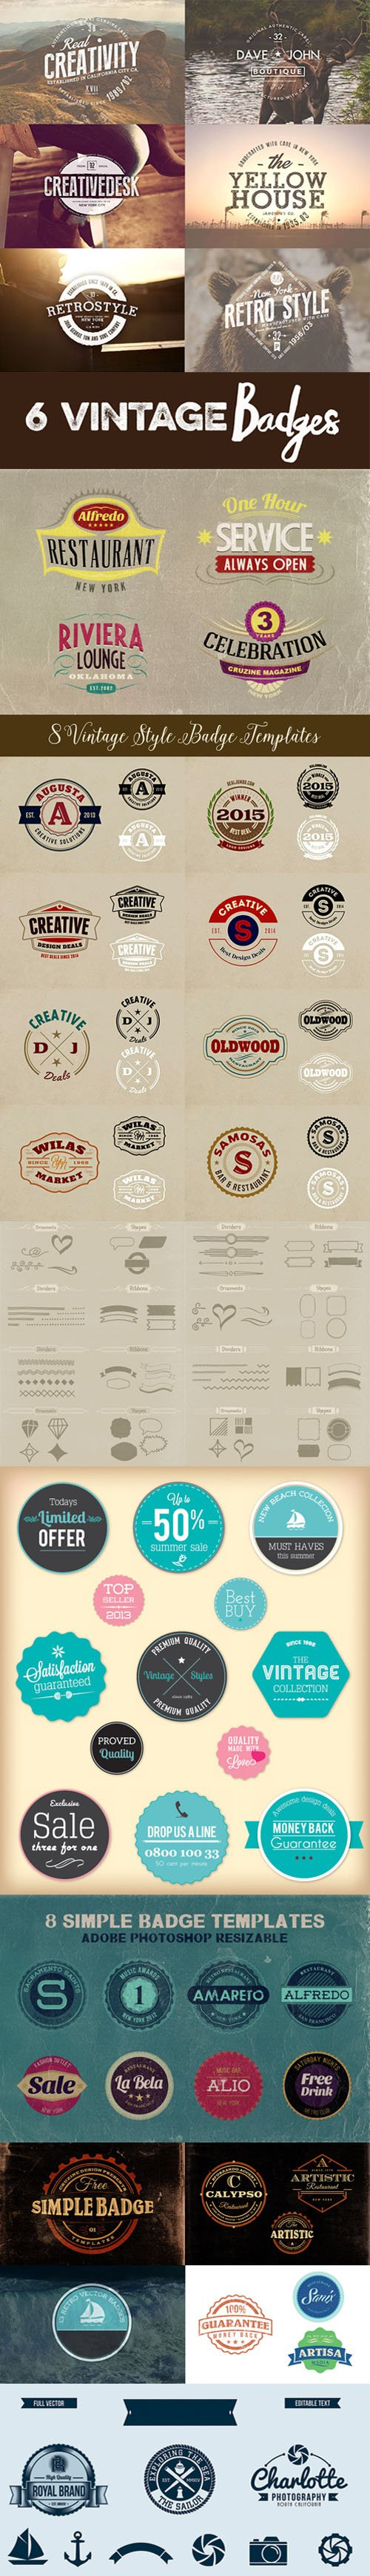 Retro Badges, Signs, Logos and Elements Templates Pack [PSD/AI/EPS]